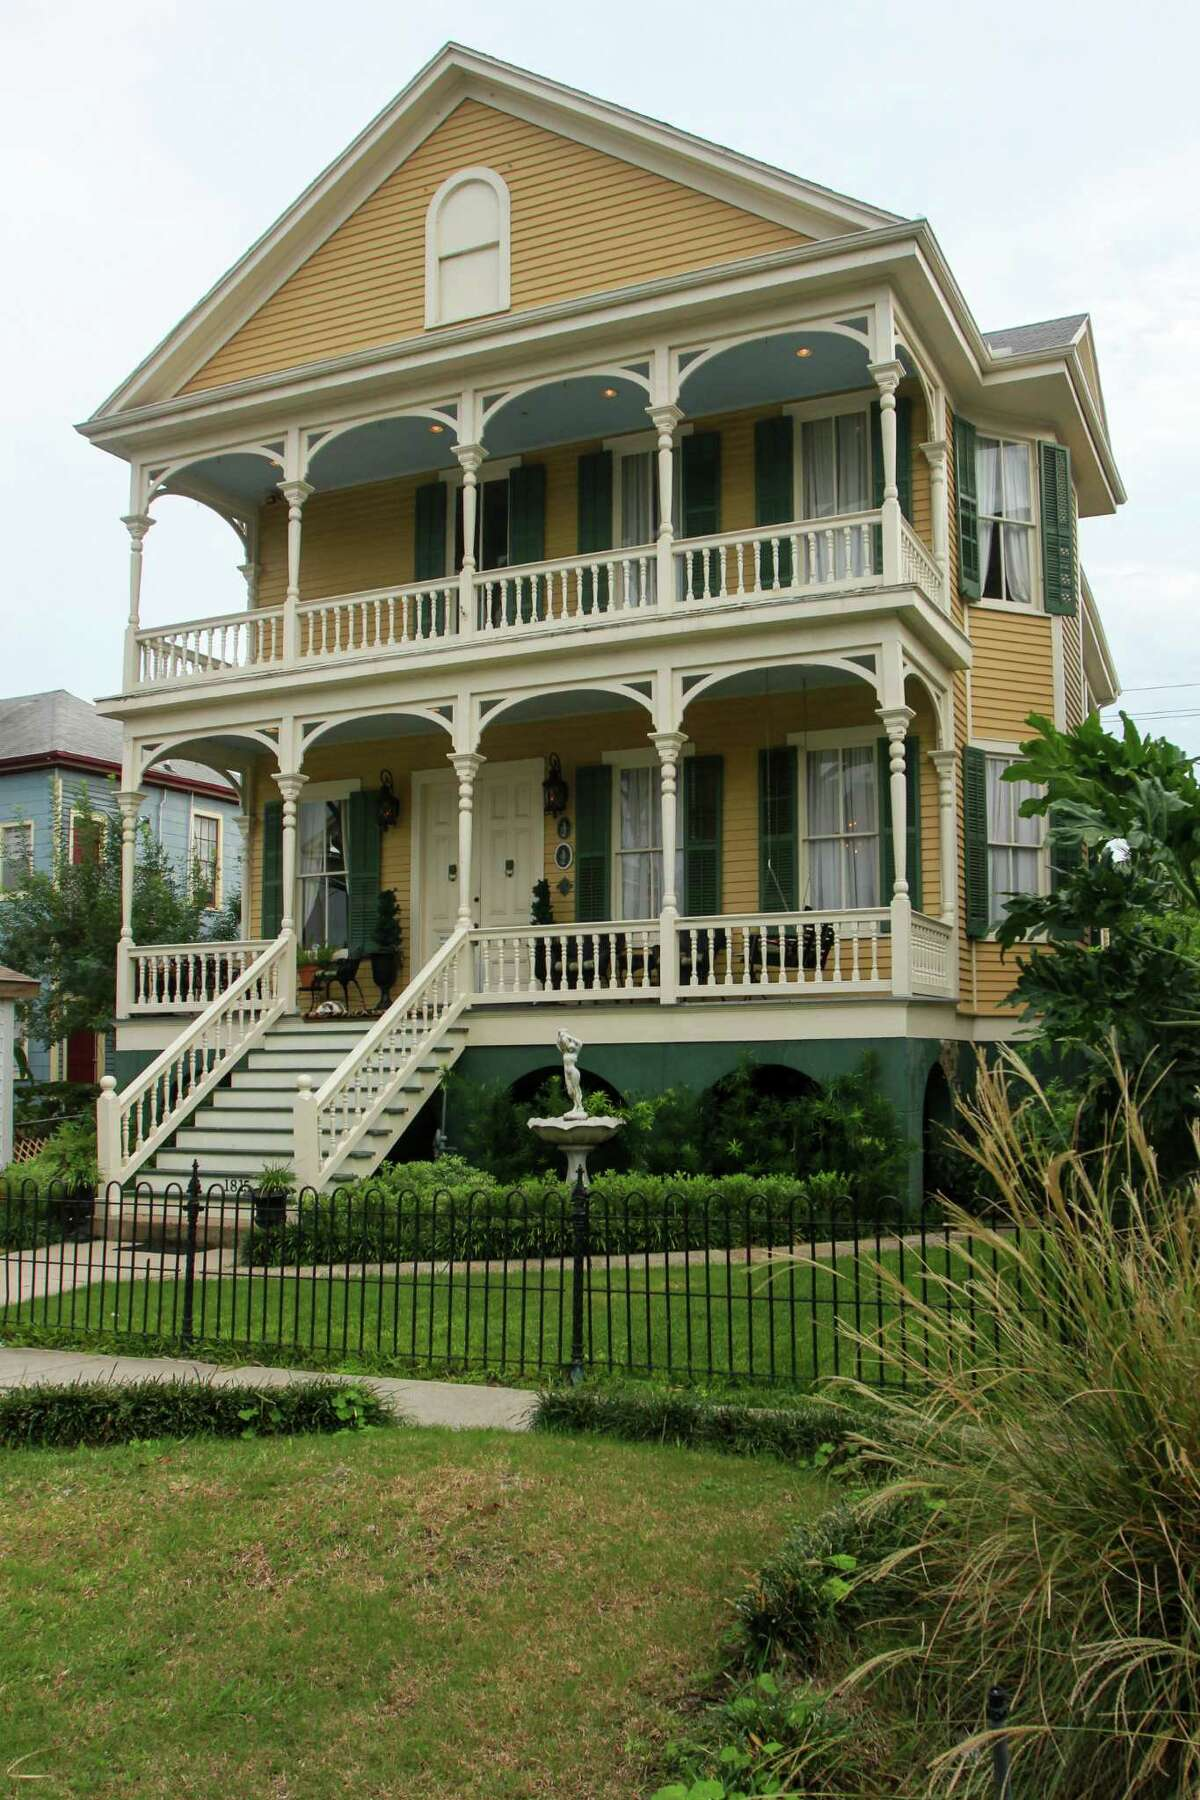 This 1898 Galveston home was built by Joseph Goldstein, who came to Galveston from New Orleans.